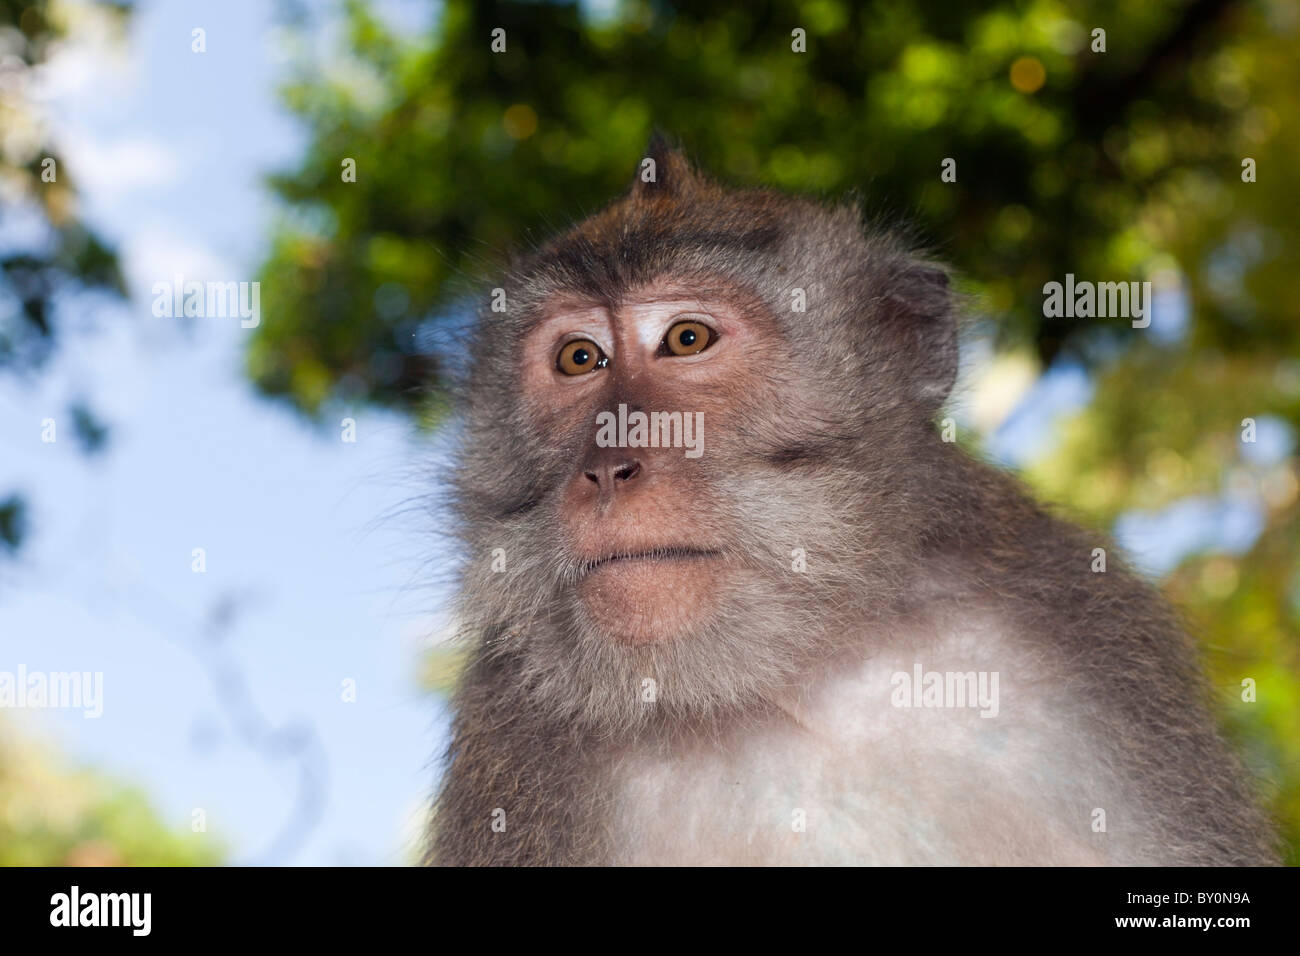 Longtailed Macaques, Macaca fascicularis, Bali, Indonesia - Stock Image